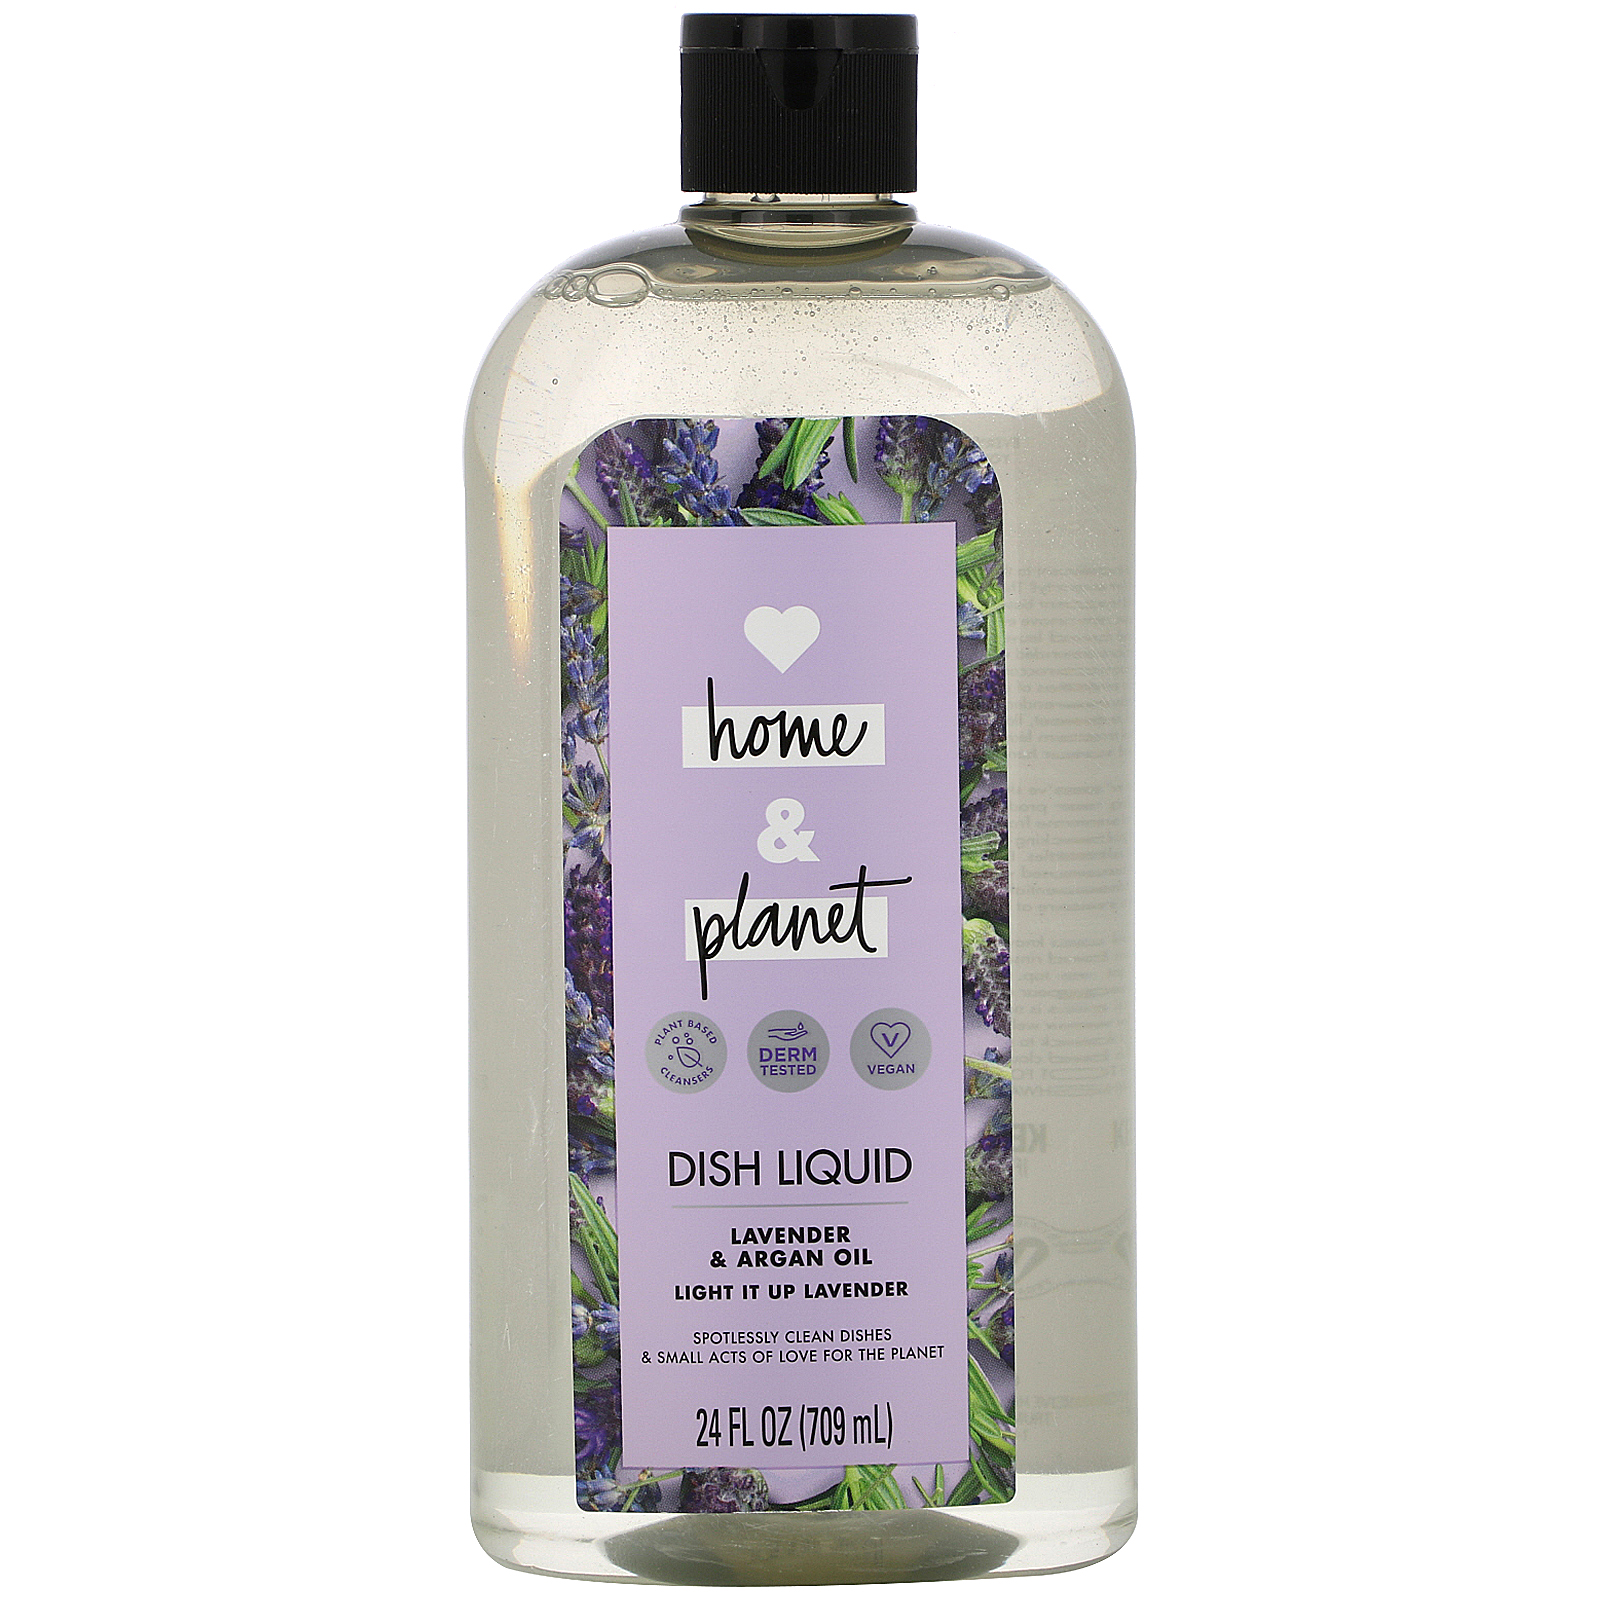 Love Home & Planet, Dish Liquid, Lavender & Argan Oil, 24 fl oz (709 ml)